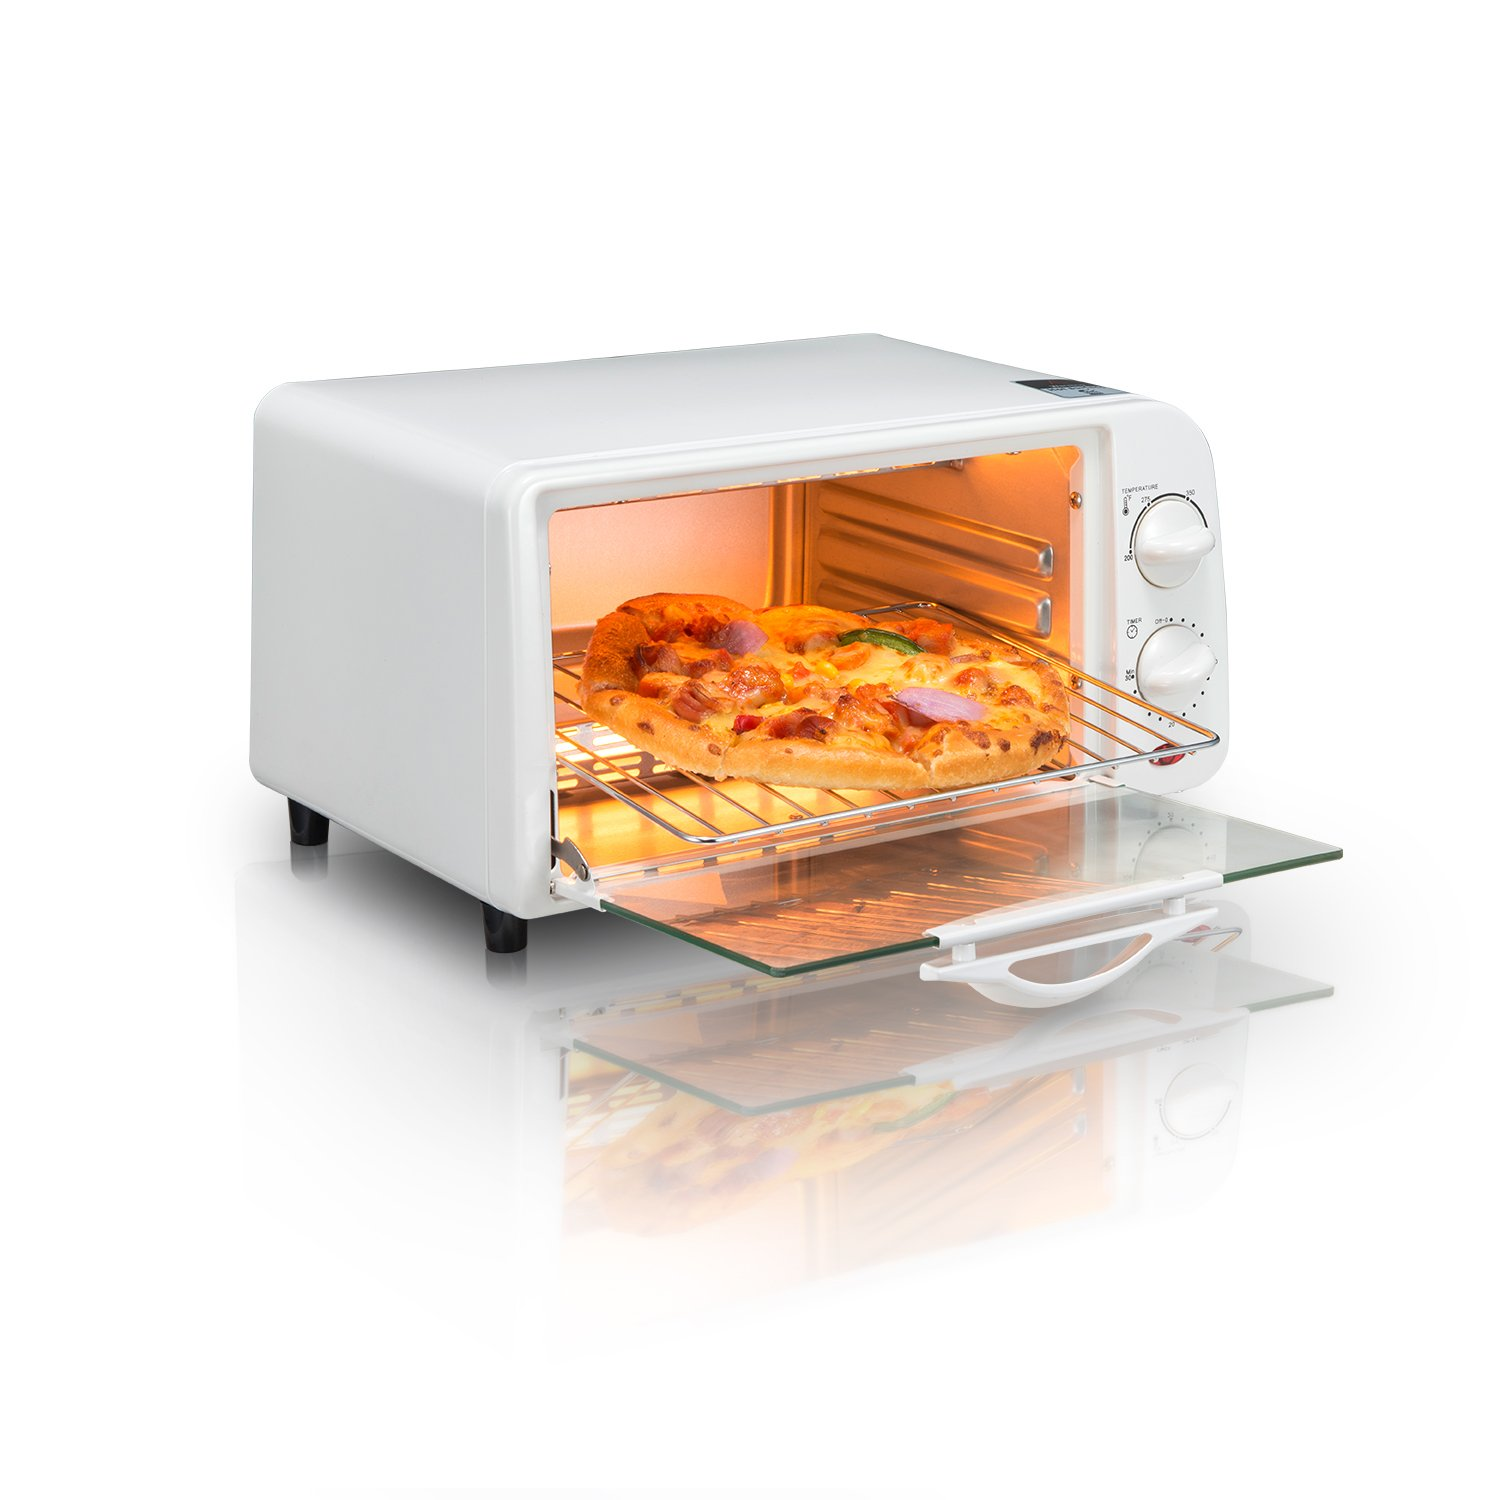 4-slice Toaster Oven Kangzilang Countertop Toaster Oven with Temperature Control Includes Bake Pan、 Bake Rack and Toaster Oven Cookbook (White)